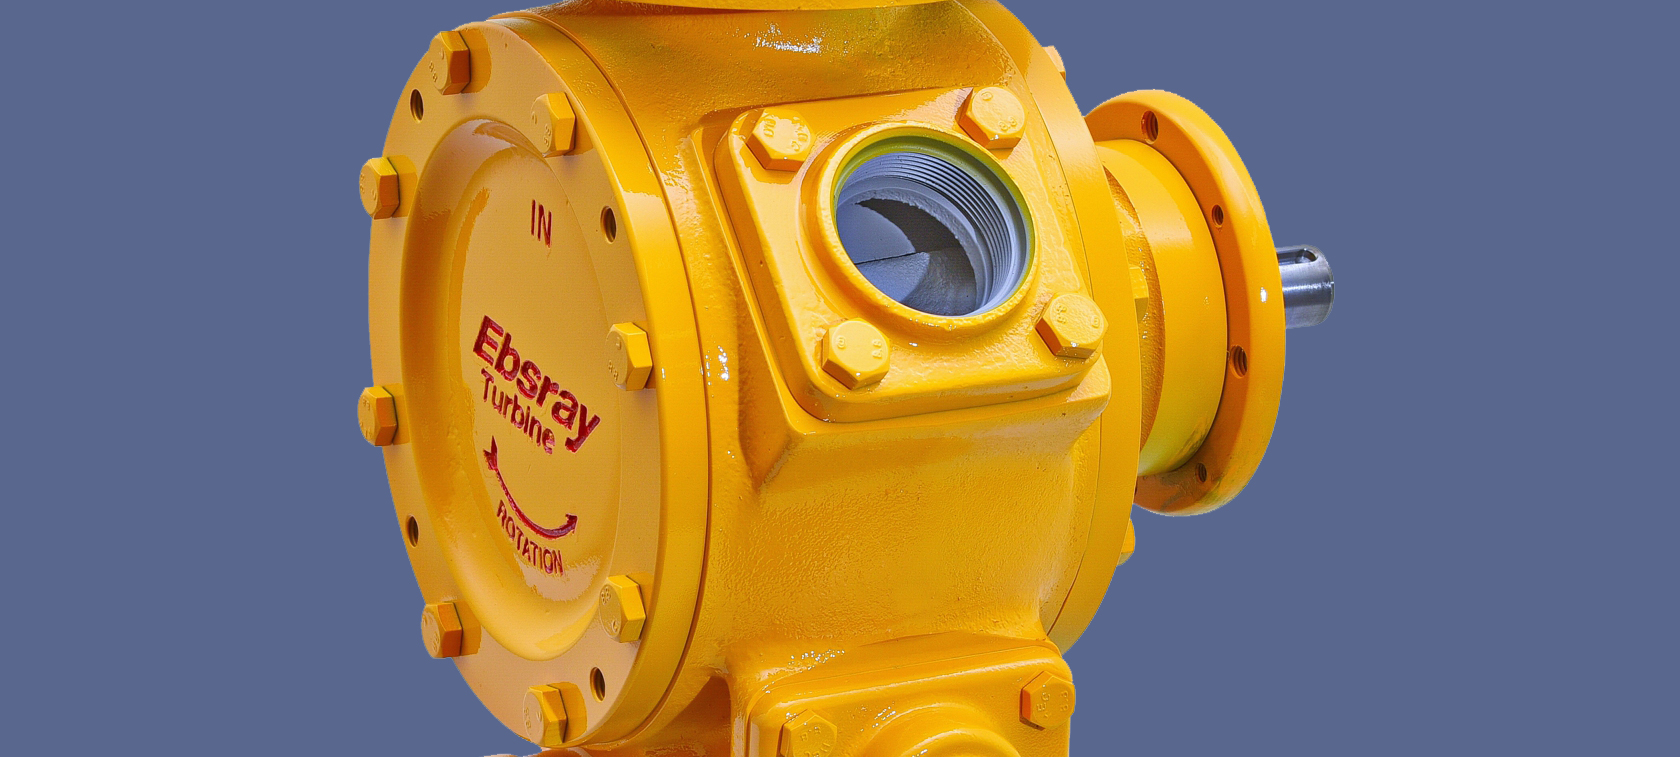 Ebsray to debut R75 pump at AEGPL Congress